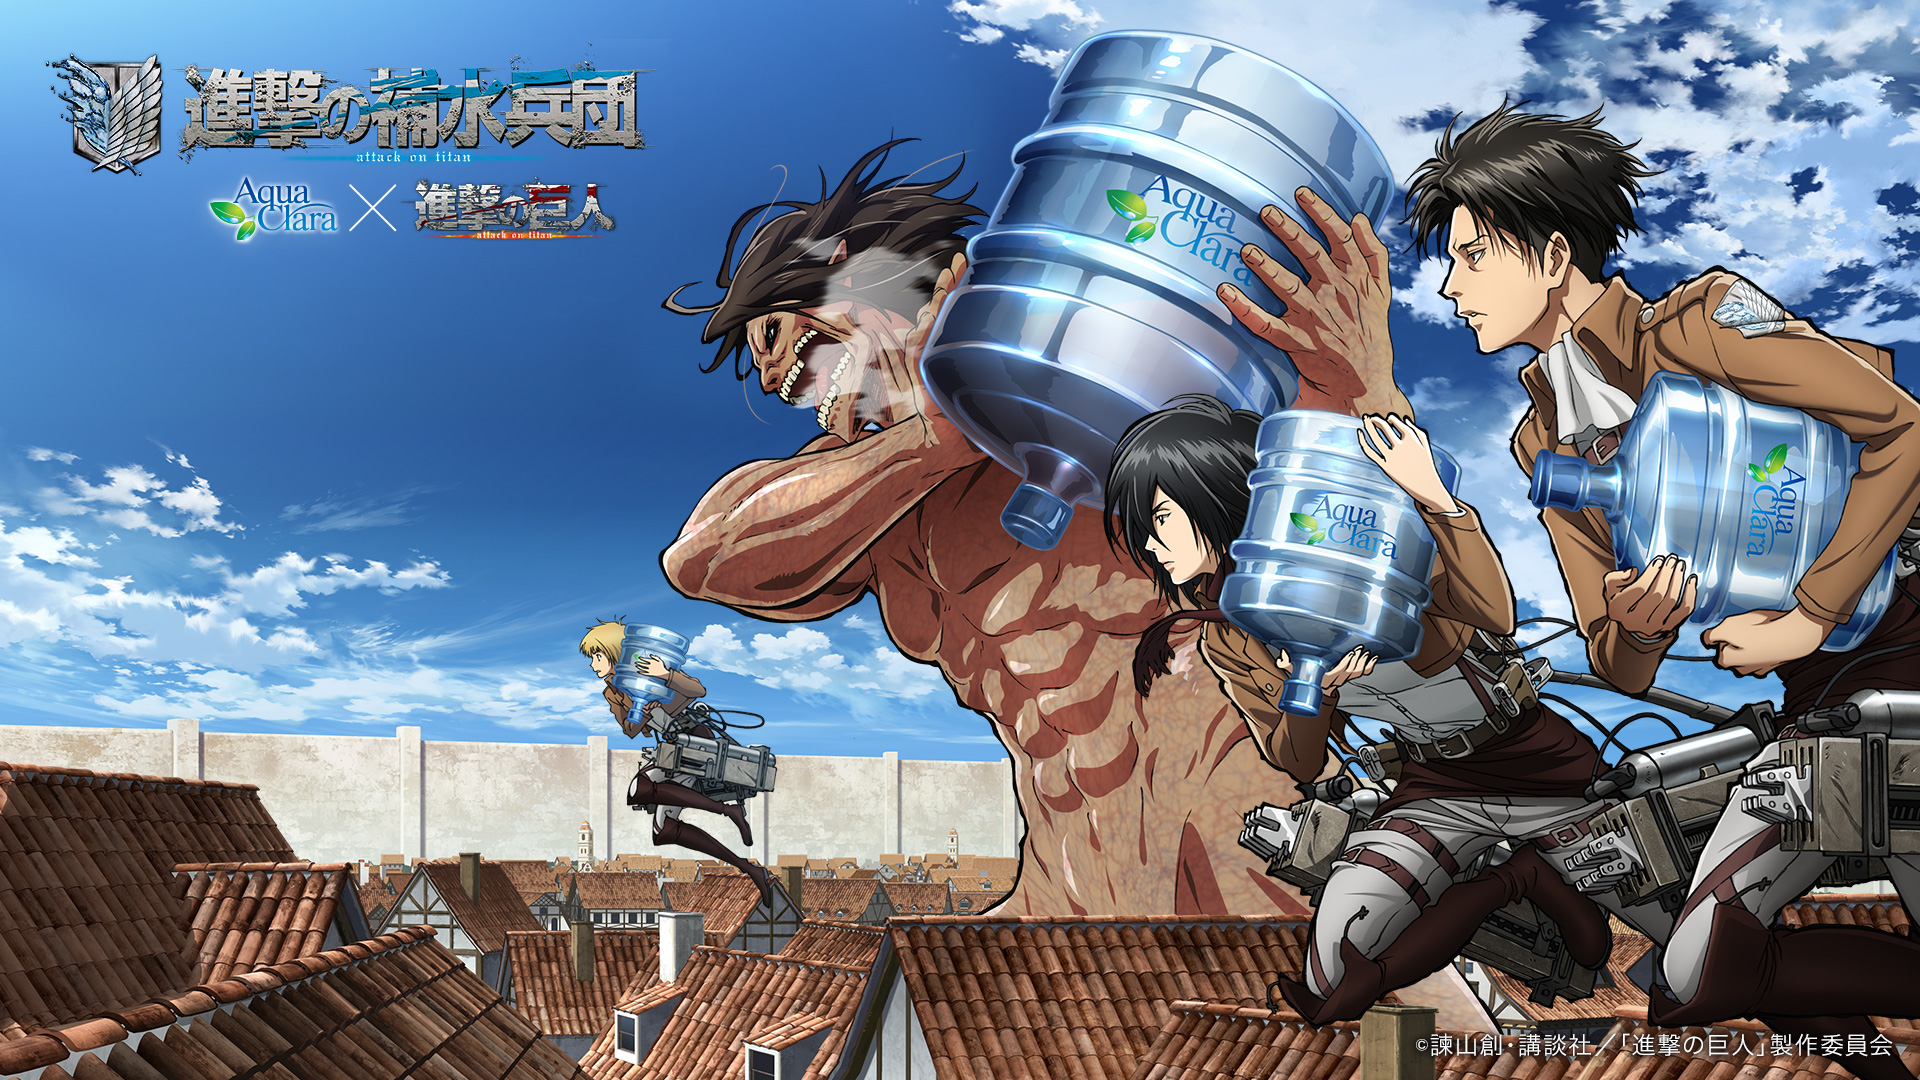 Attack on Aqua Clara haruhichan.com Attack on Titan Shingeki no Kyojin aqua clara visual